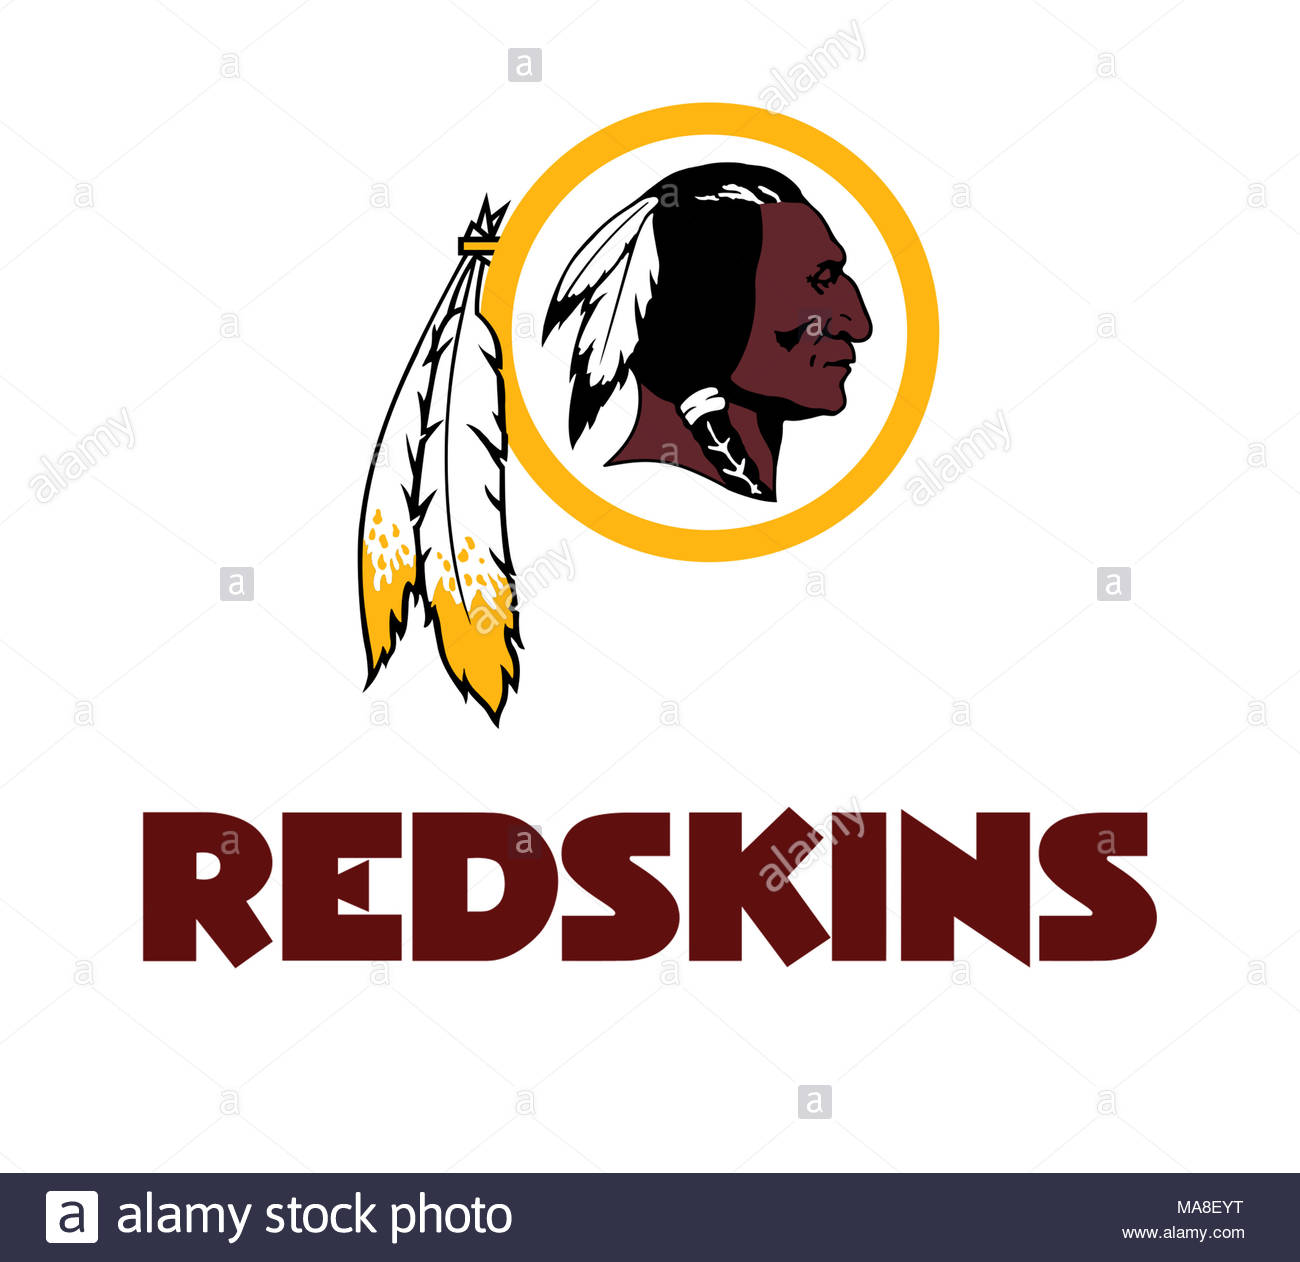 Cool Redskins Logos Free Vector And Clipart Ideas